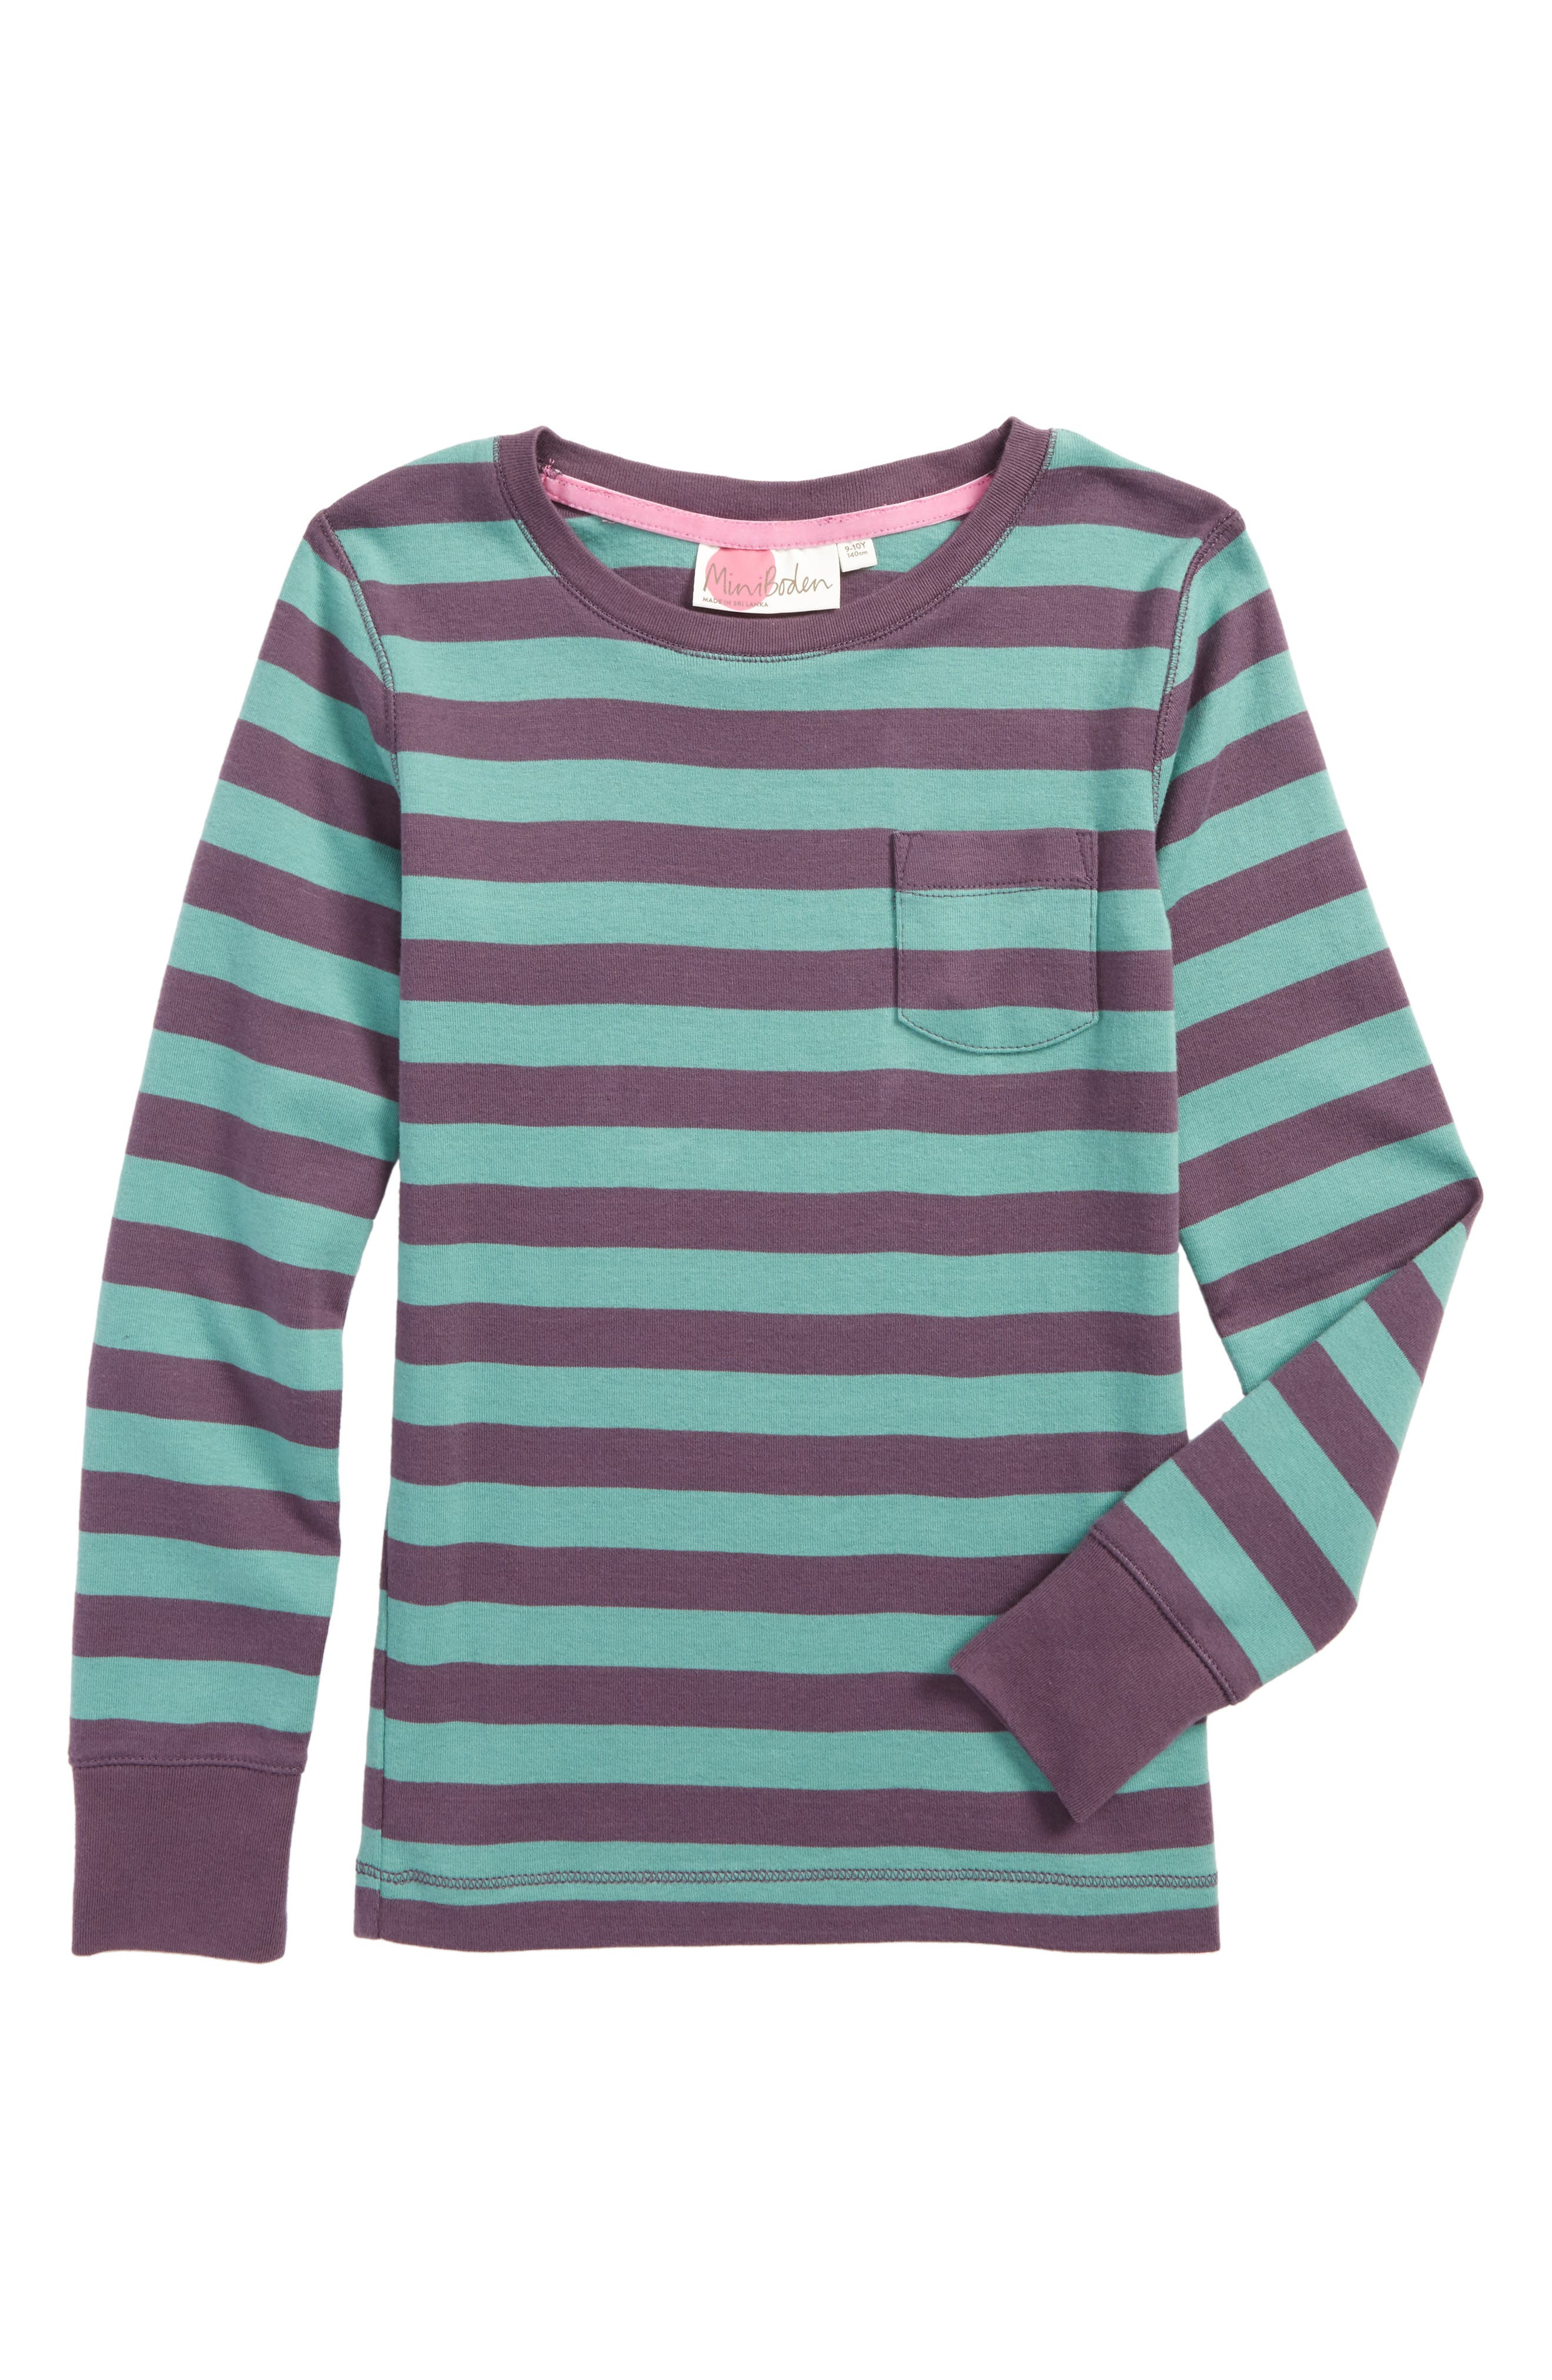 Everyday Tee,                         Main,                         color, 304